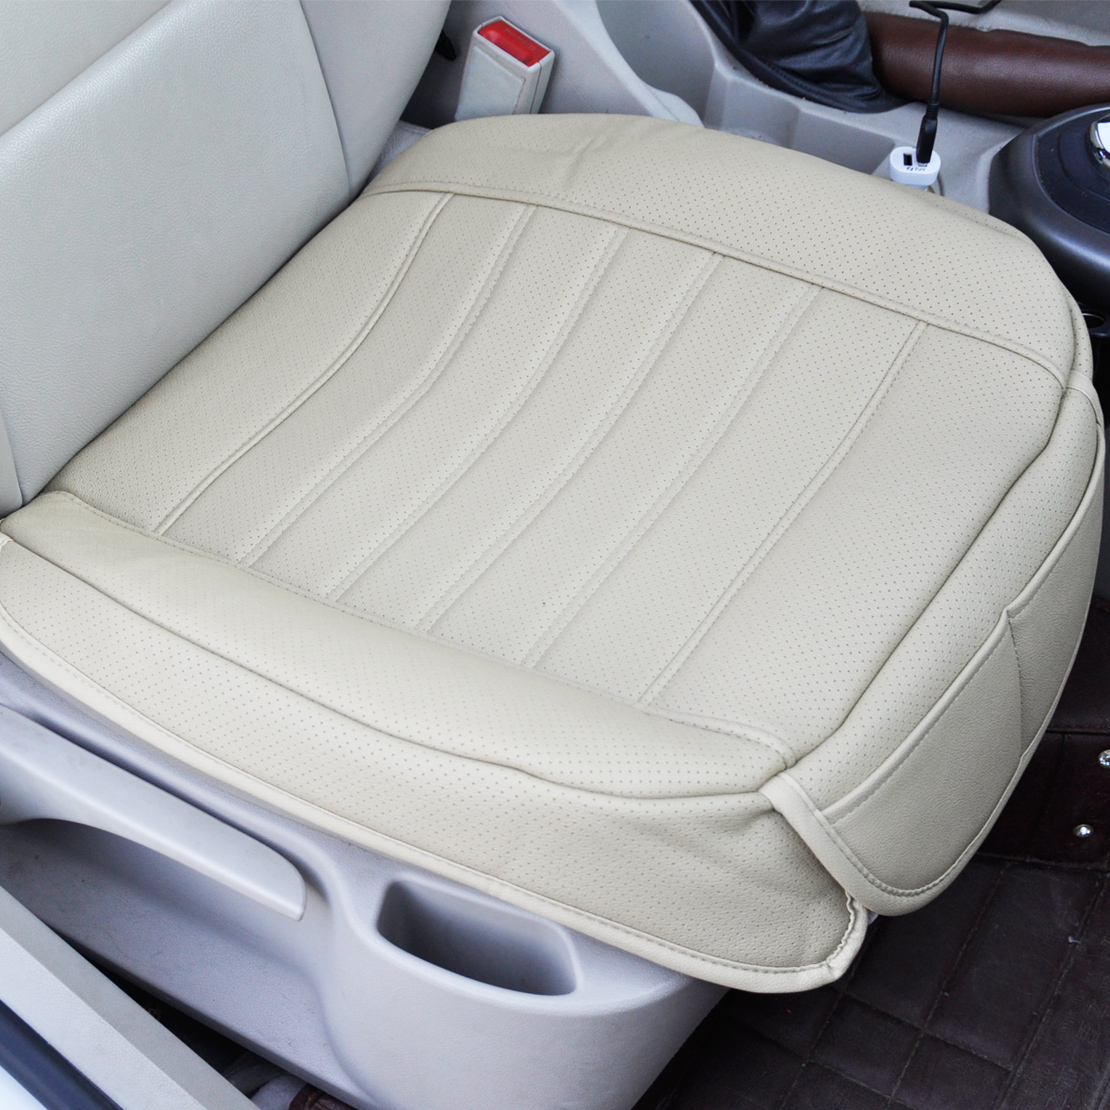 Universal Beige Seatpad PU Leather Car Seat Covers For Auto Office Chairs 702706039161